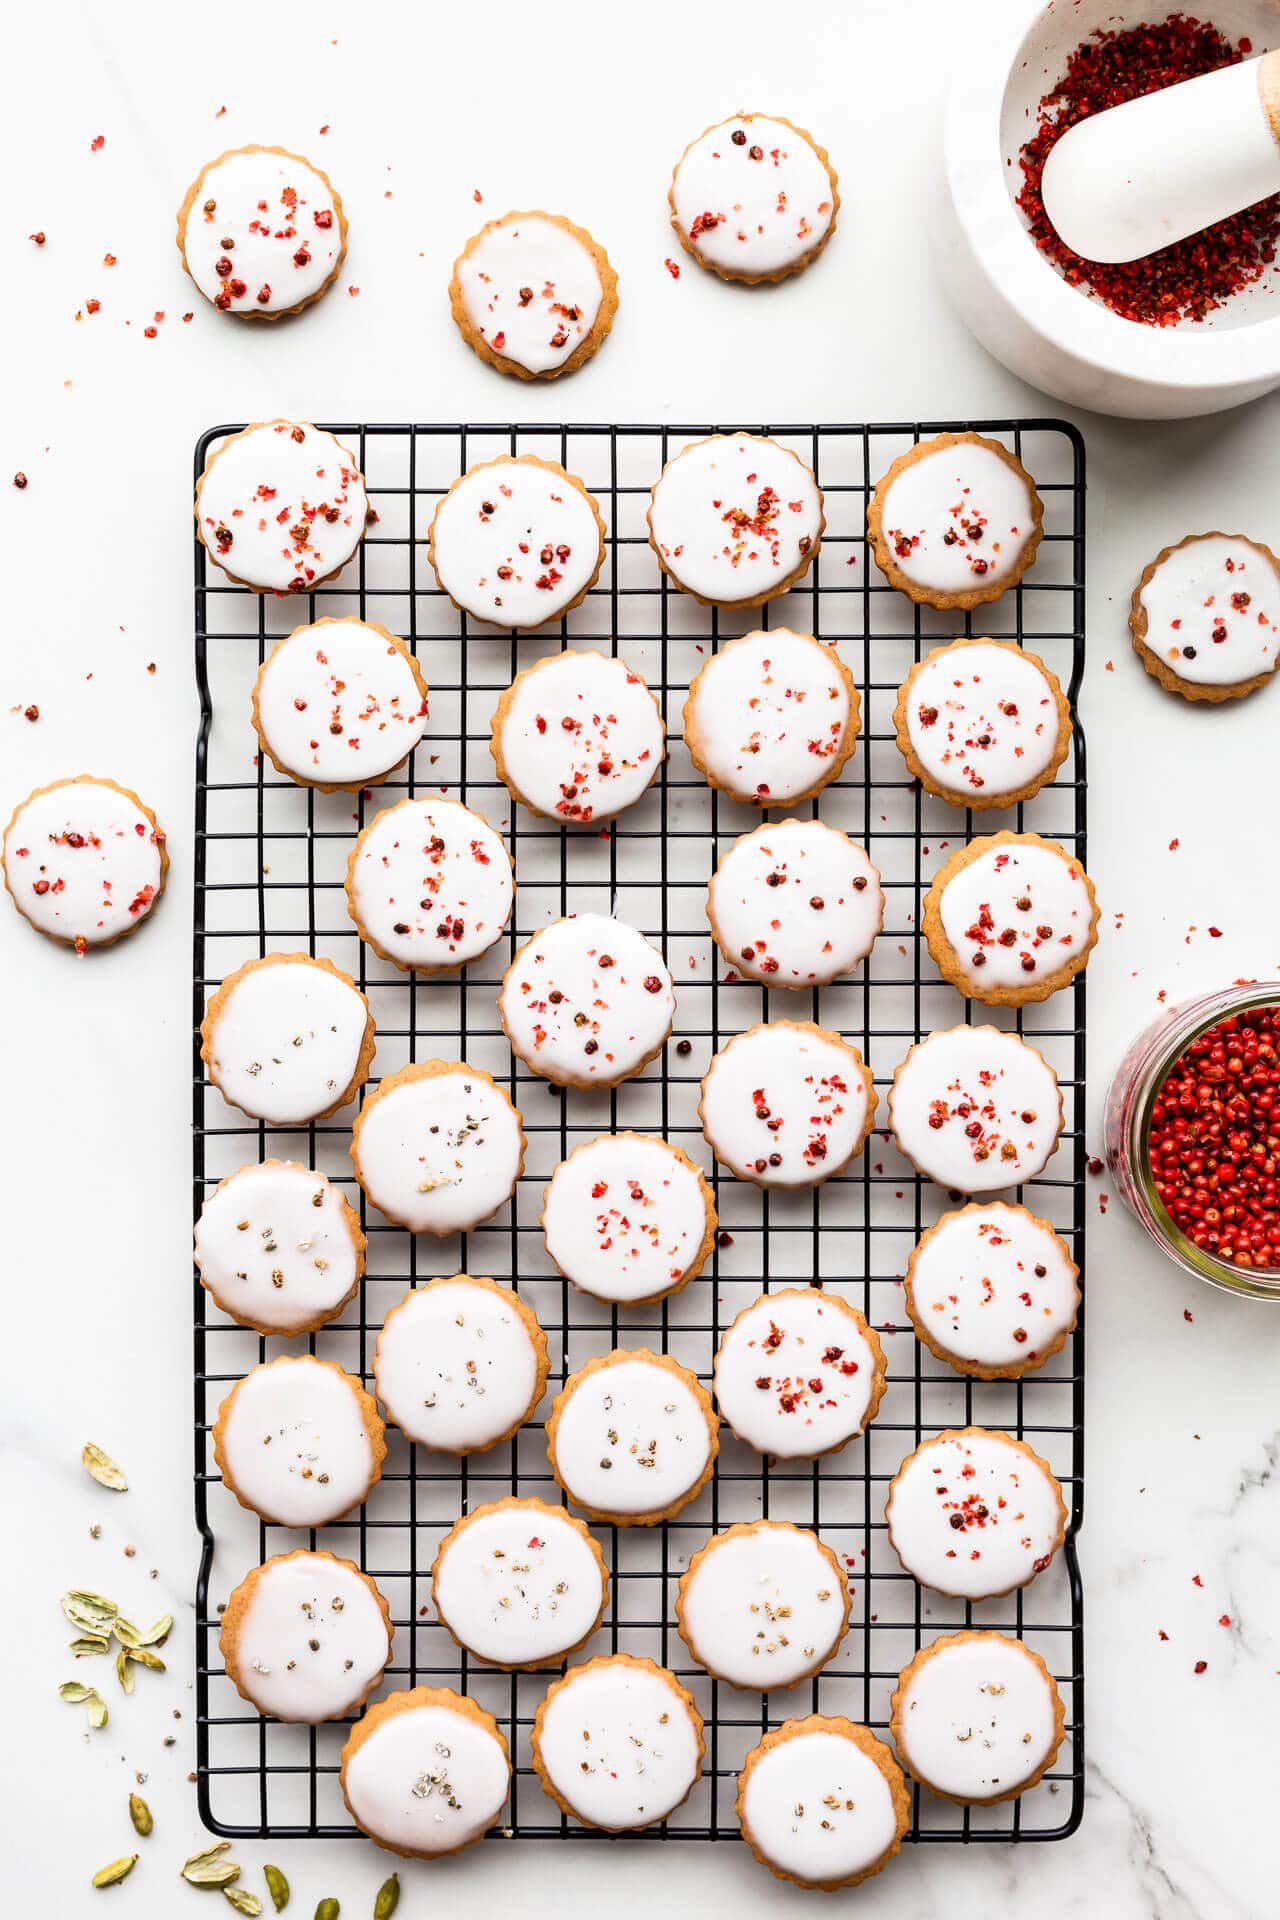 Glazed round gingerbread cookies garnished with crushed pink peppercorns and freshly ground cardamom on a black cooling rack.